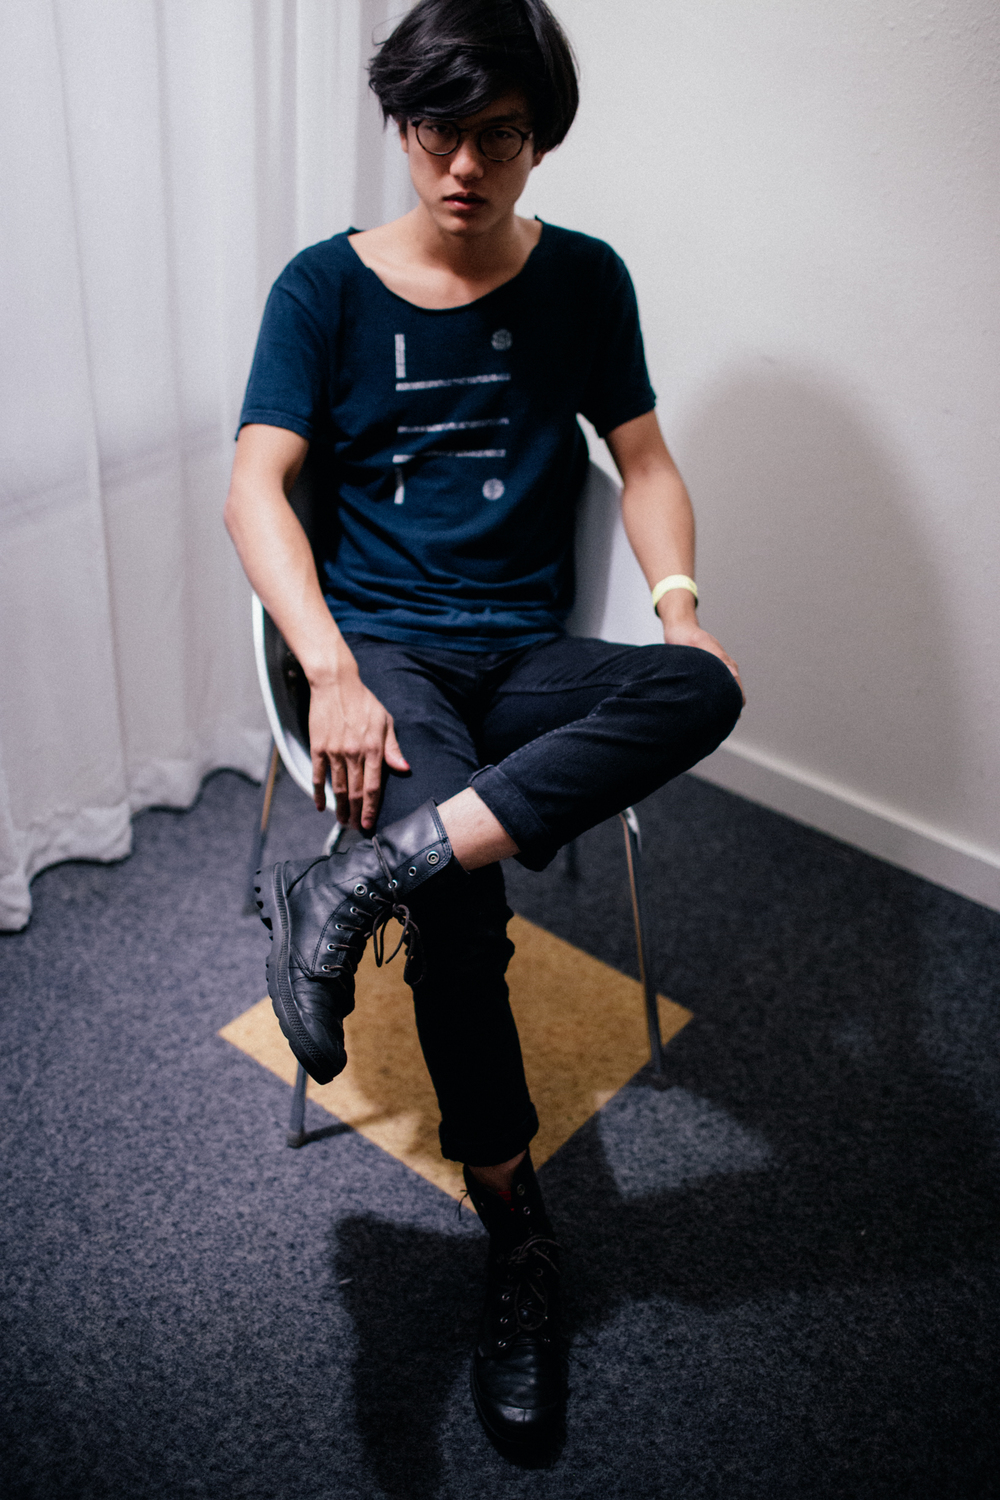 Son Lux drummer Ian Chang